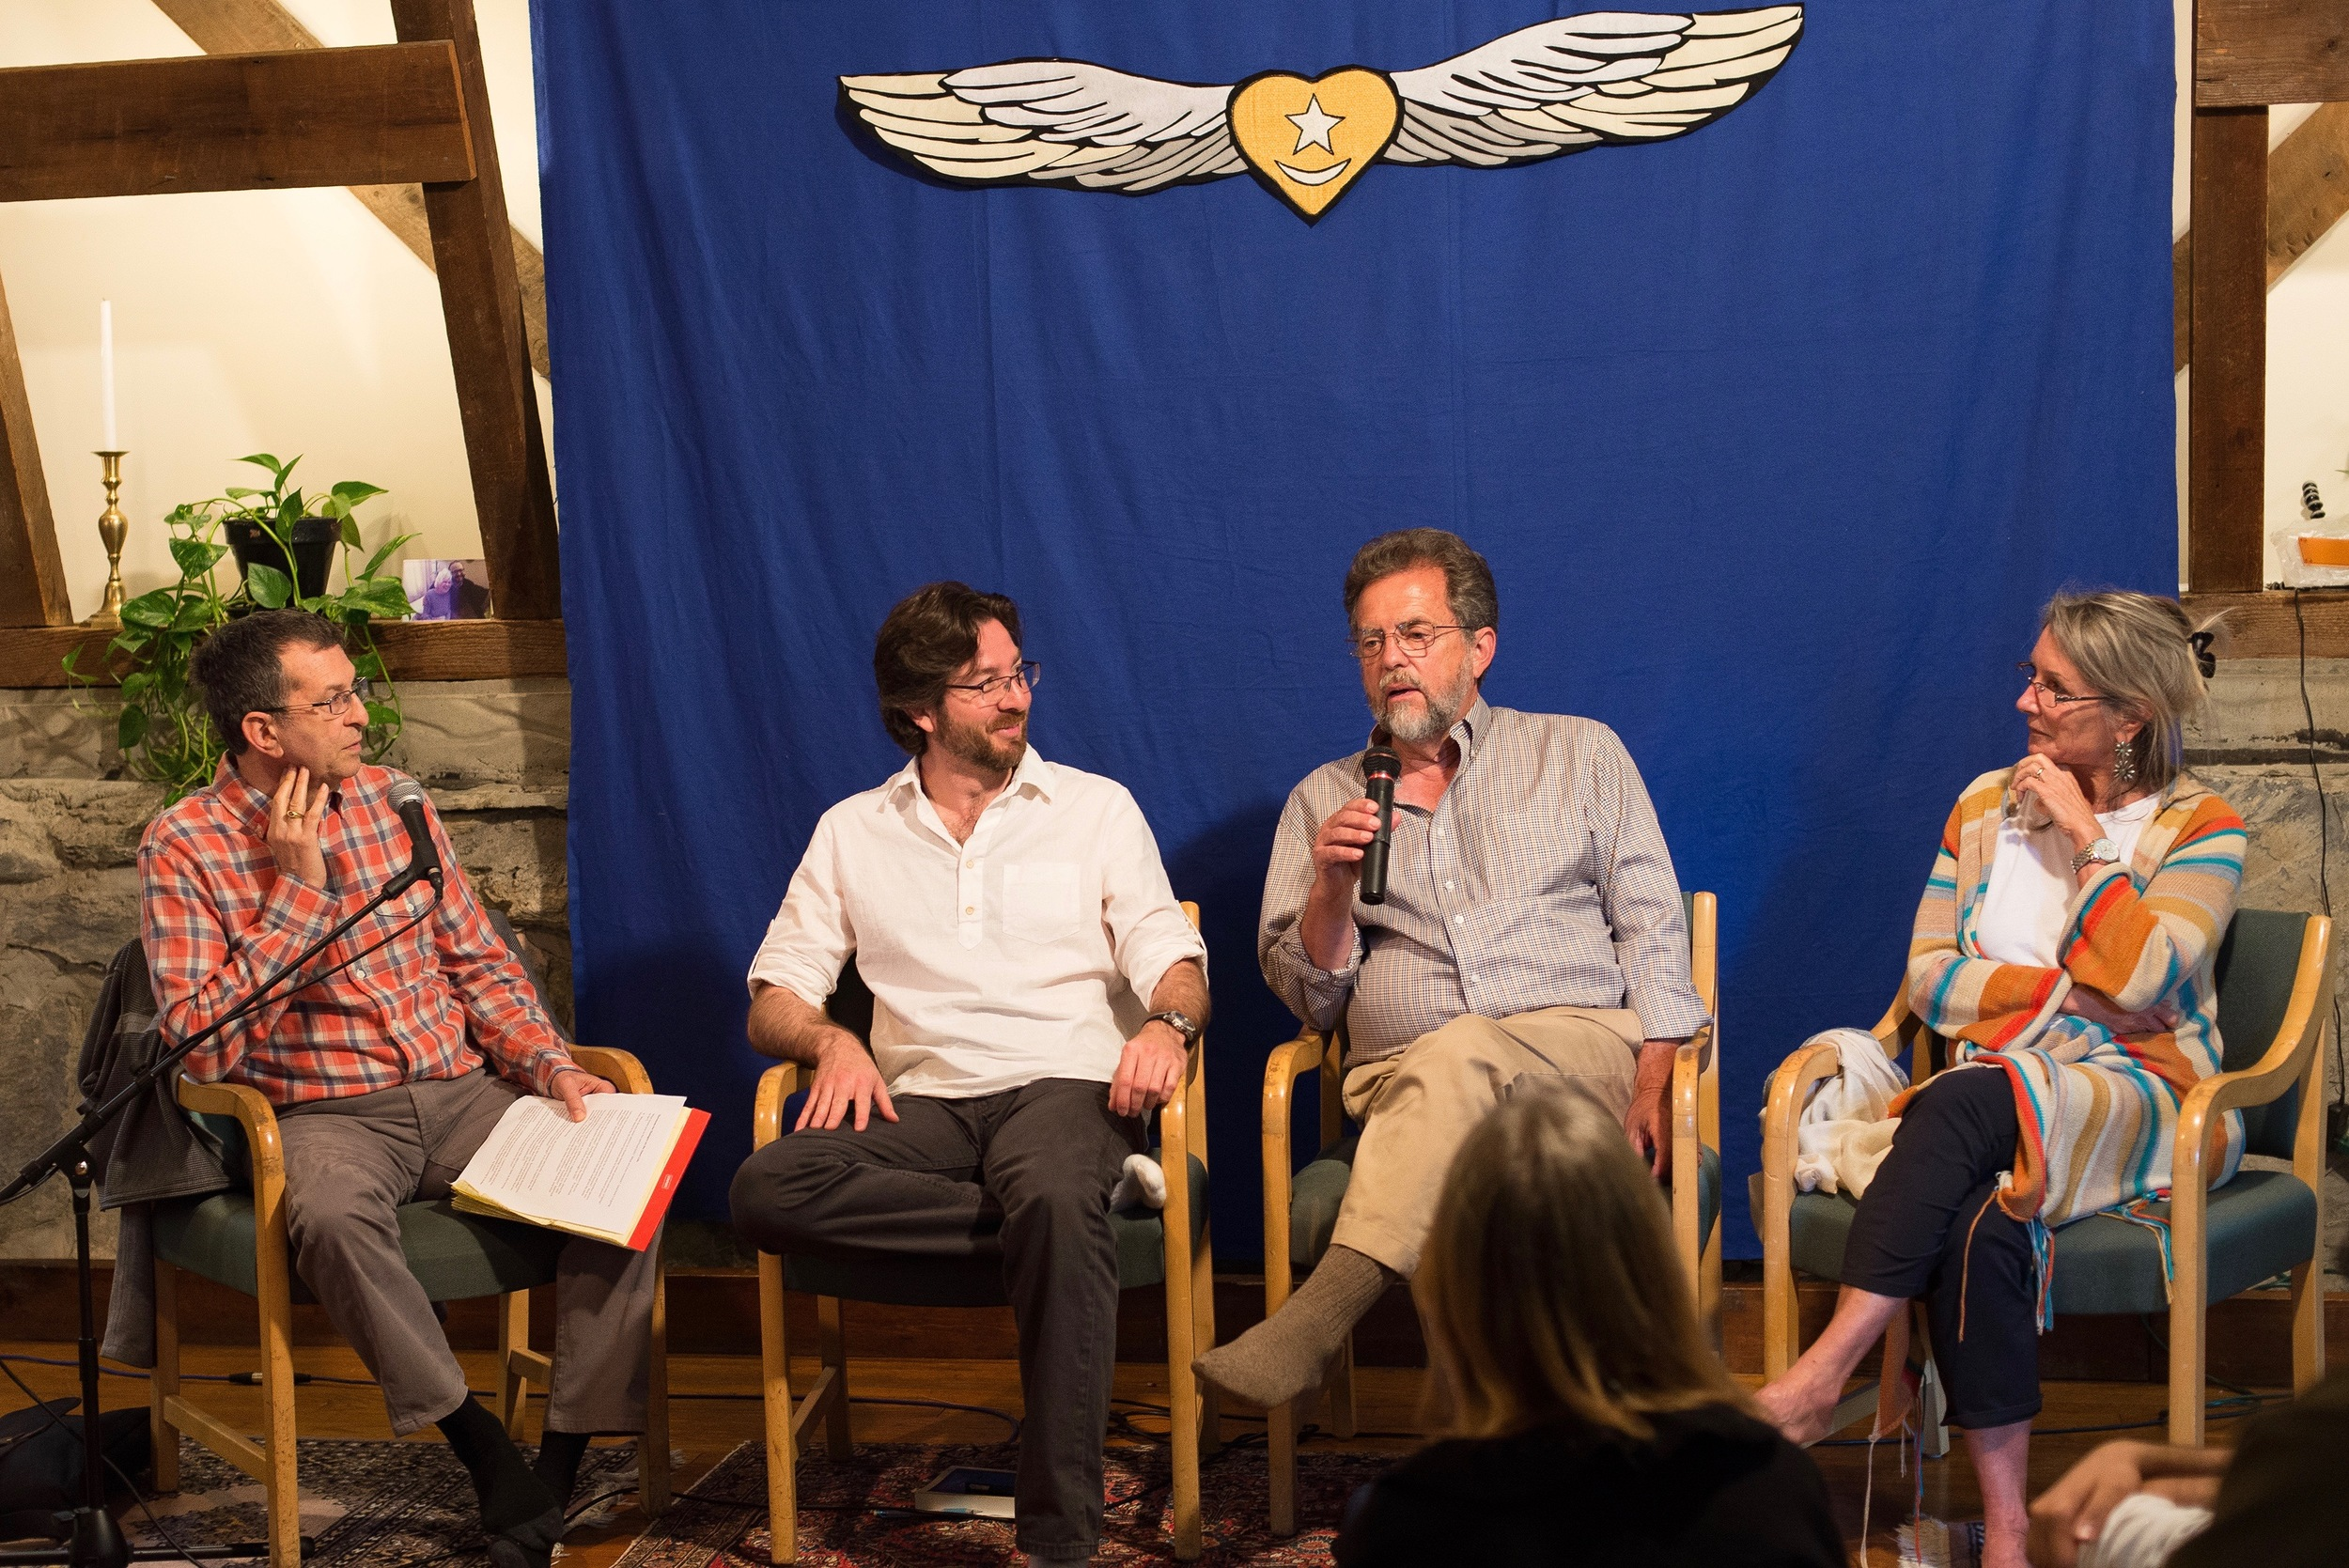 Gayan Macher,Netanel Miles-Yépez, Himayat Inayati (speaking), and   Taj Inayat during the Dialogue on the Inner Life in the Meditation Hall, Abode of the Message. Photo by Hilary Benas, 2015